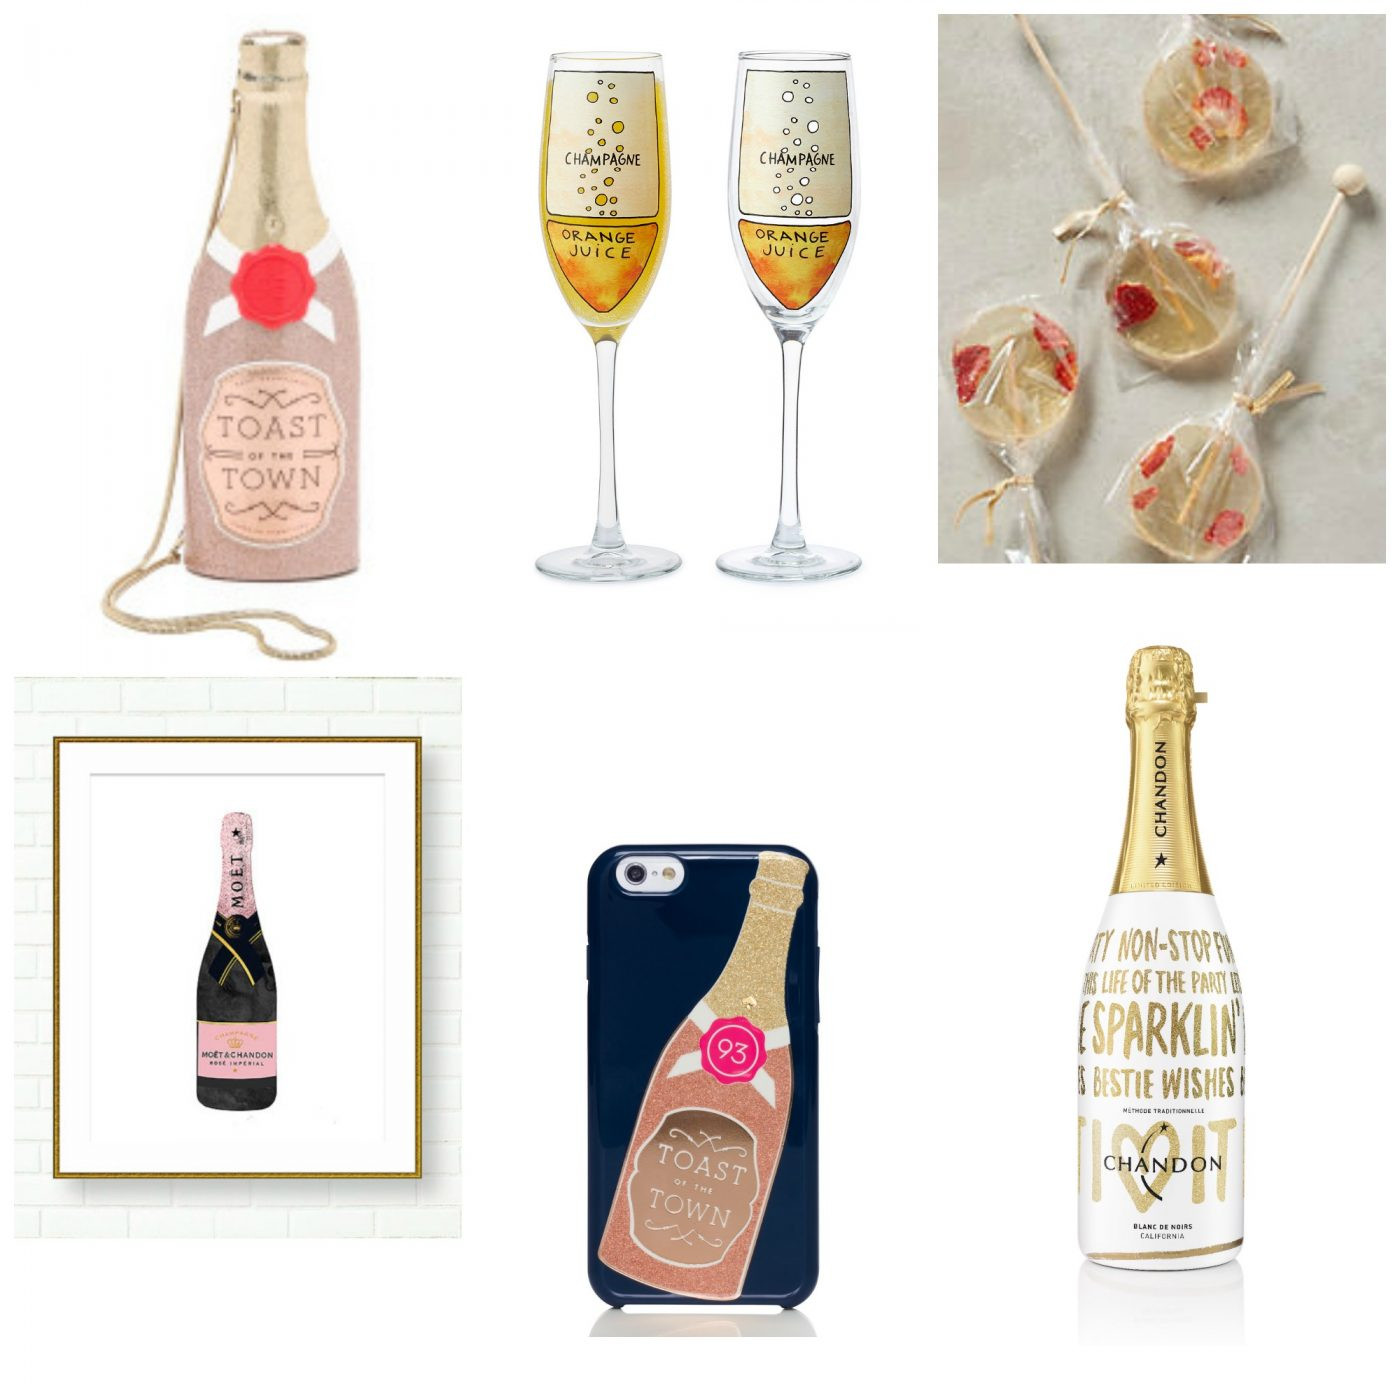 Best ideas about Champagne Gift Ideas . Save or Pin Gift Guide For The Champagne Lover Now.